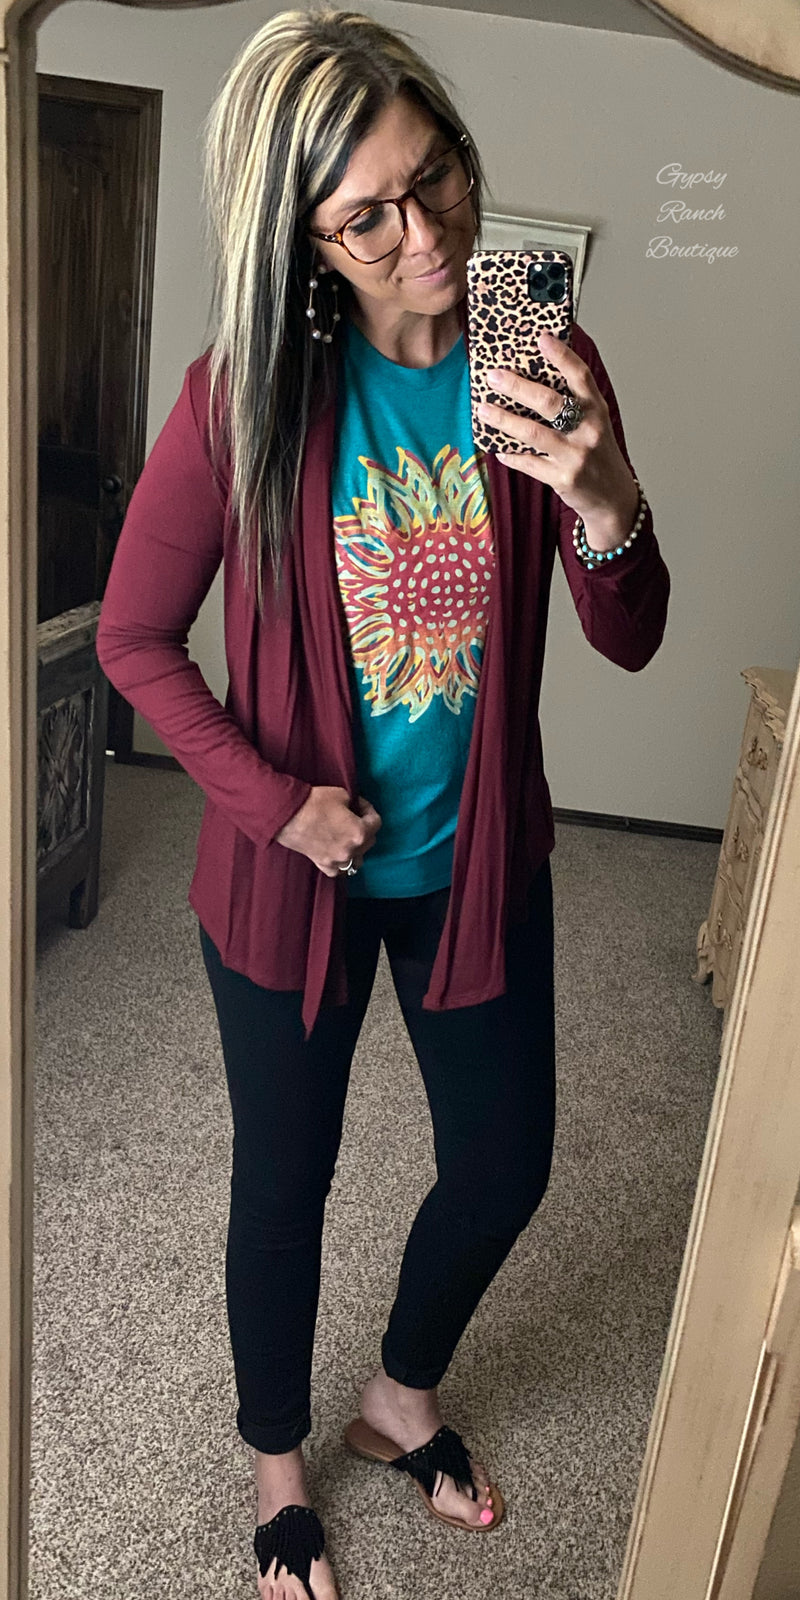 Gunnison Burgundy Cardigan - Also in Plus Size